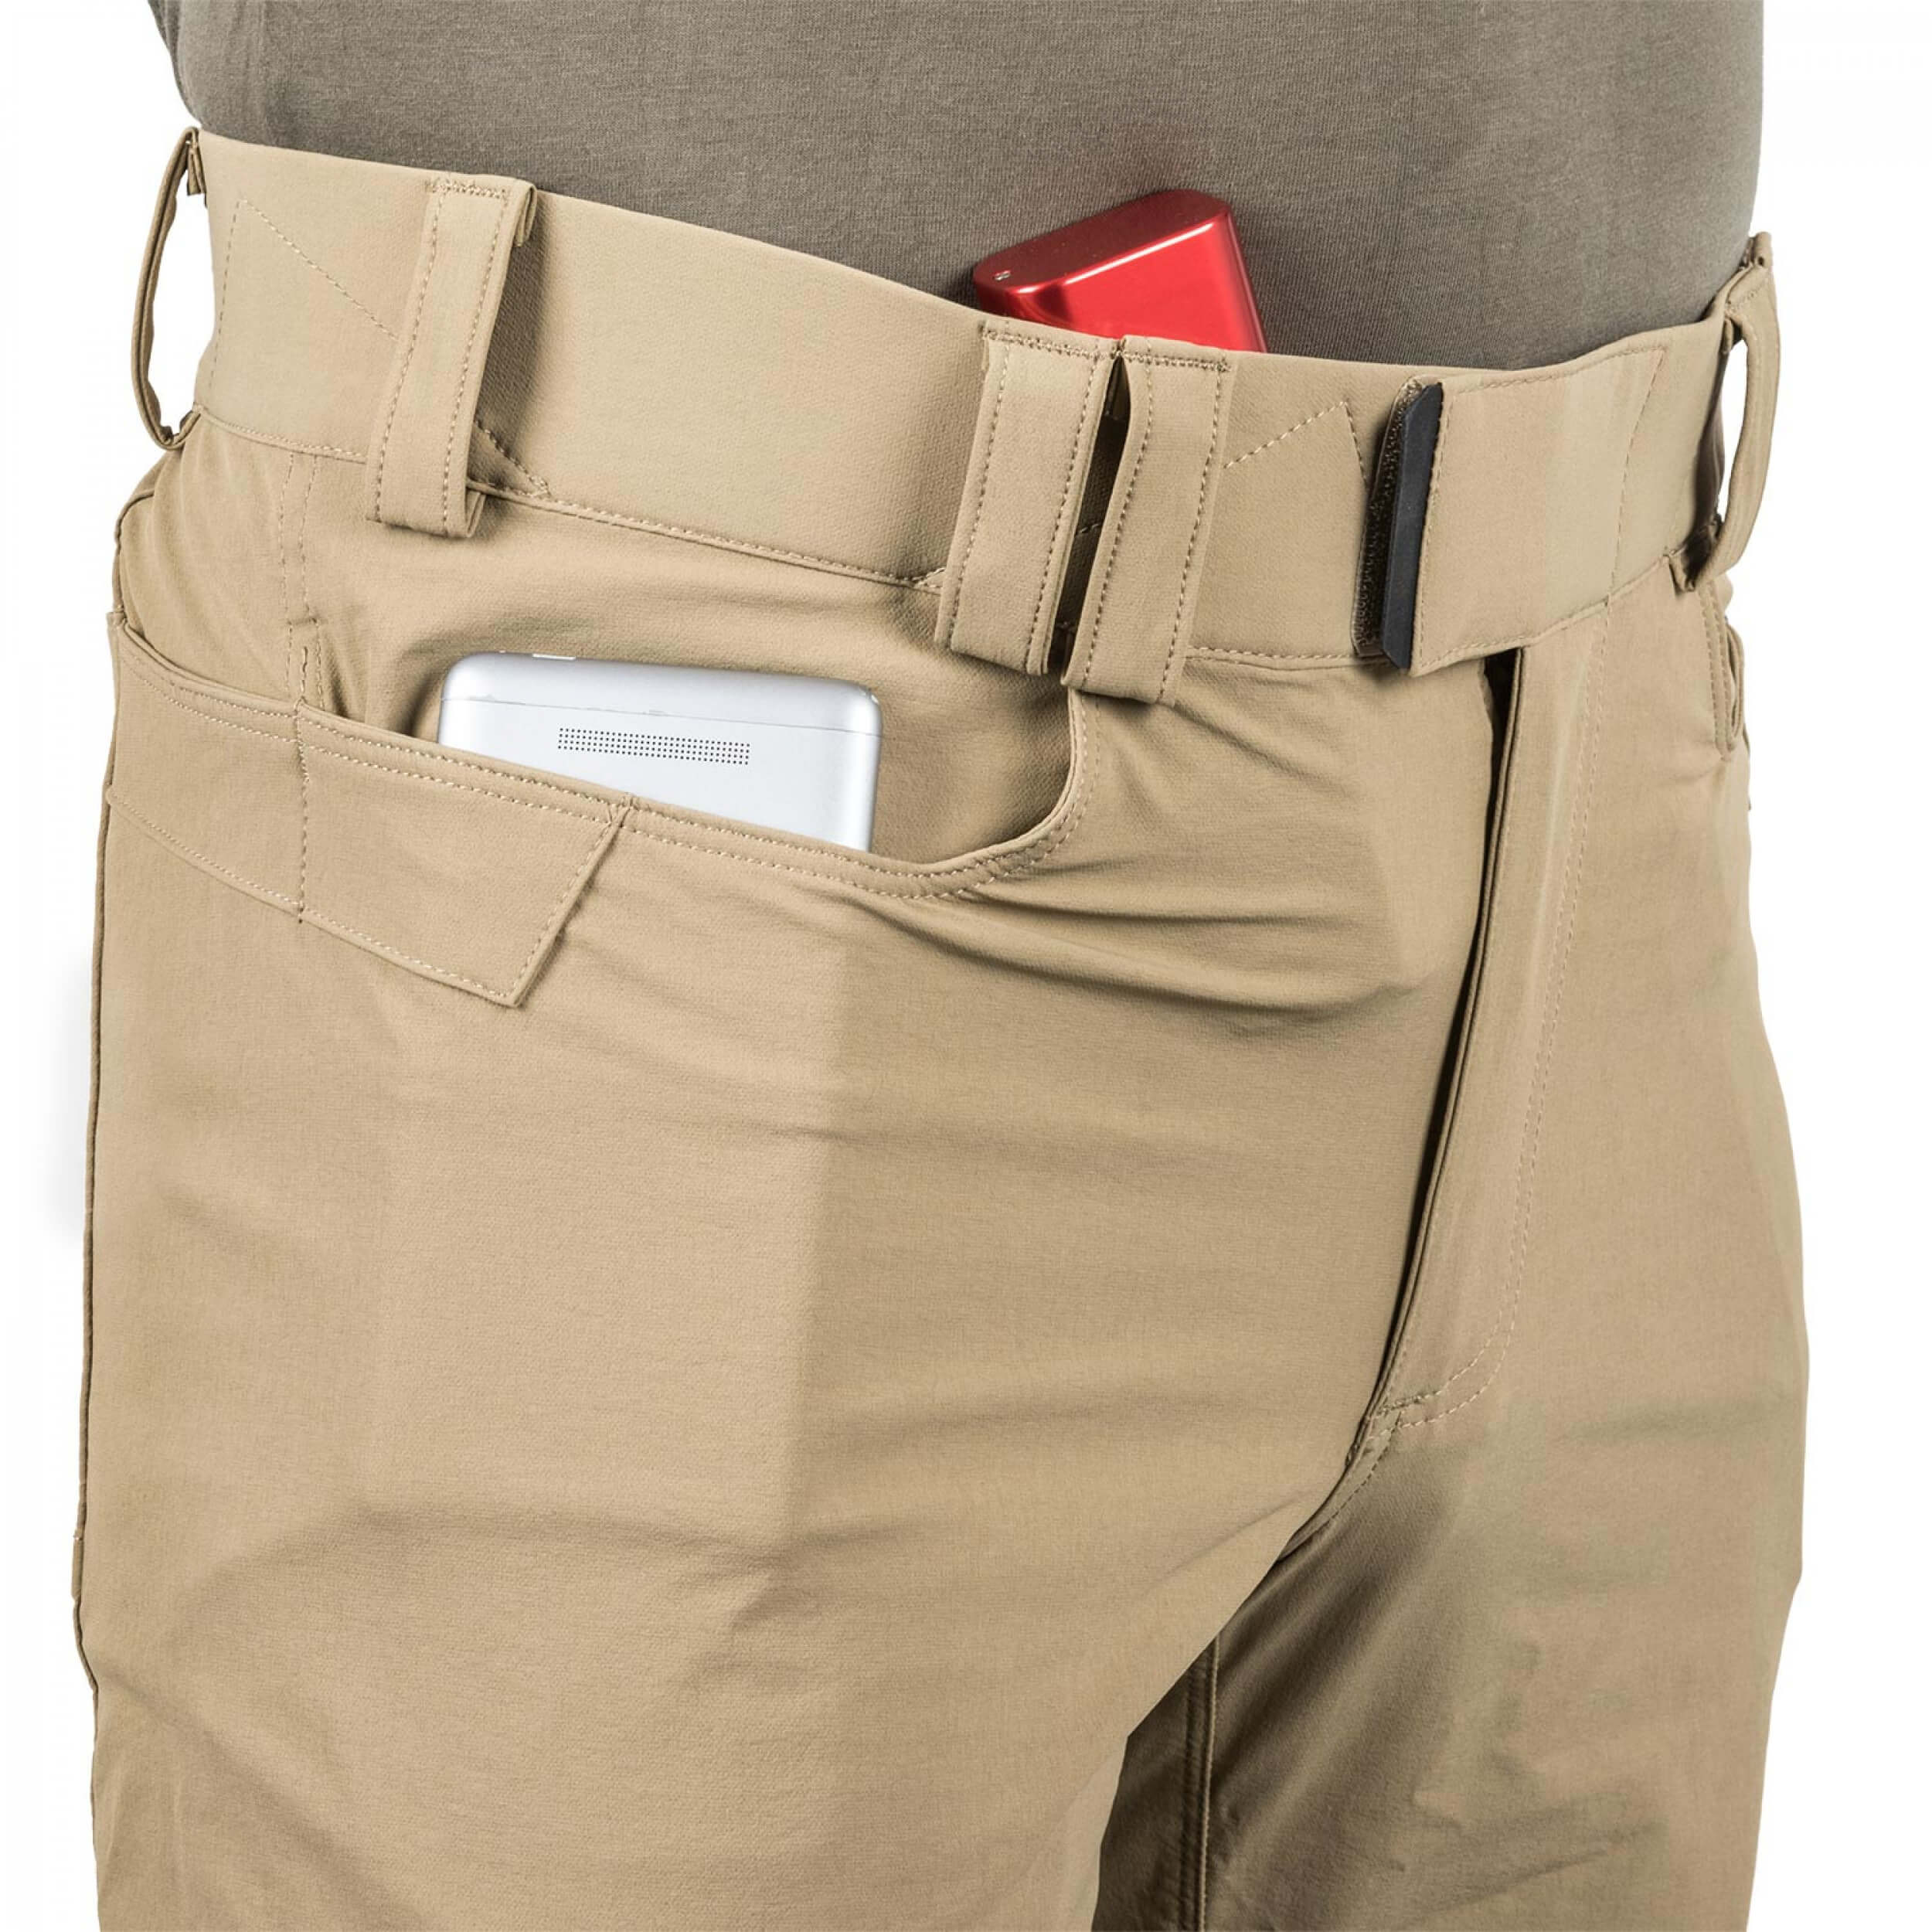 Helikon-Tex Covert Tactical Pants -VersaStretch- Olive Drab